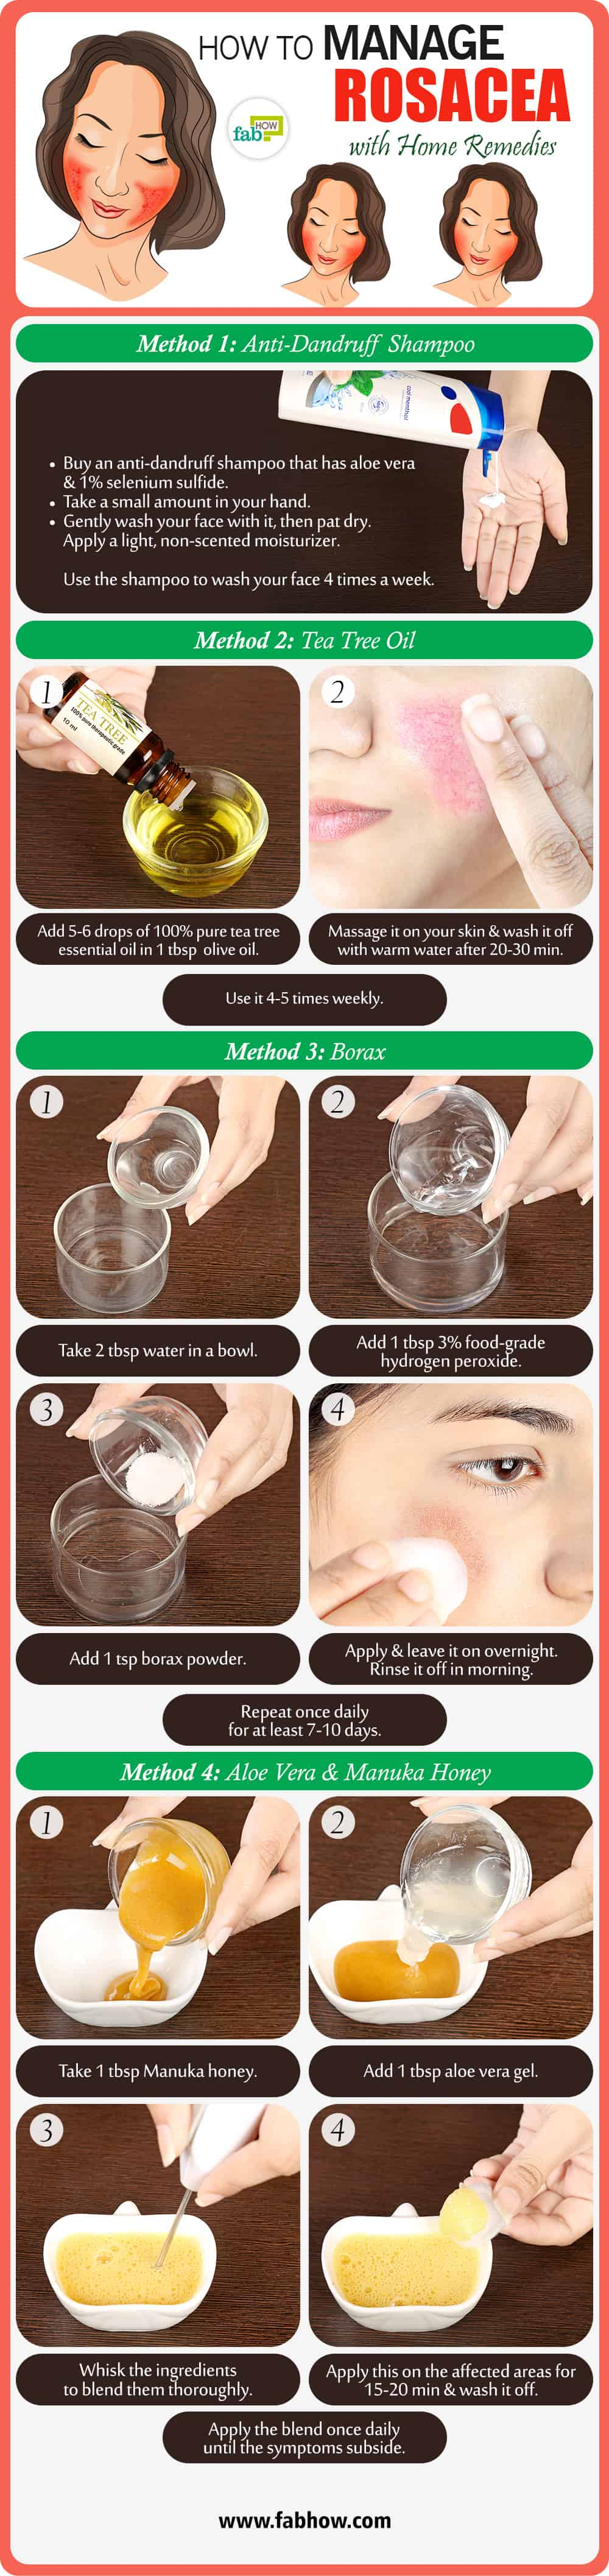 how to get rid of rosacea with top 10 home remedies fab how